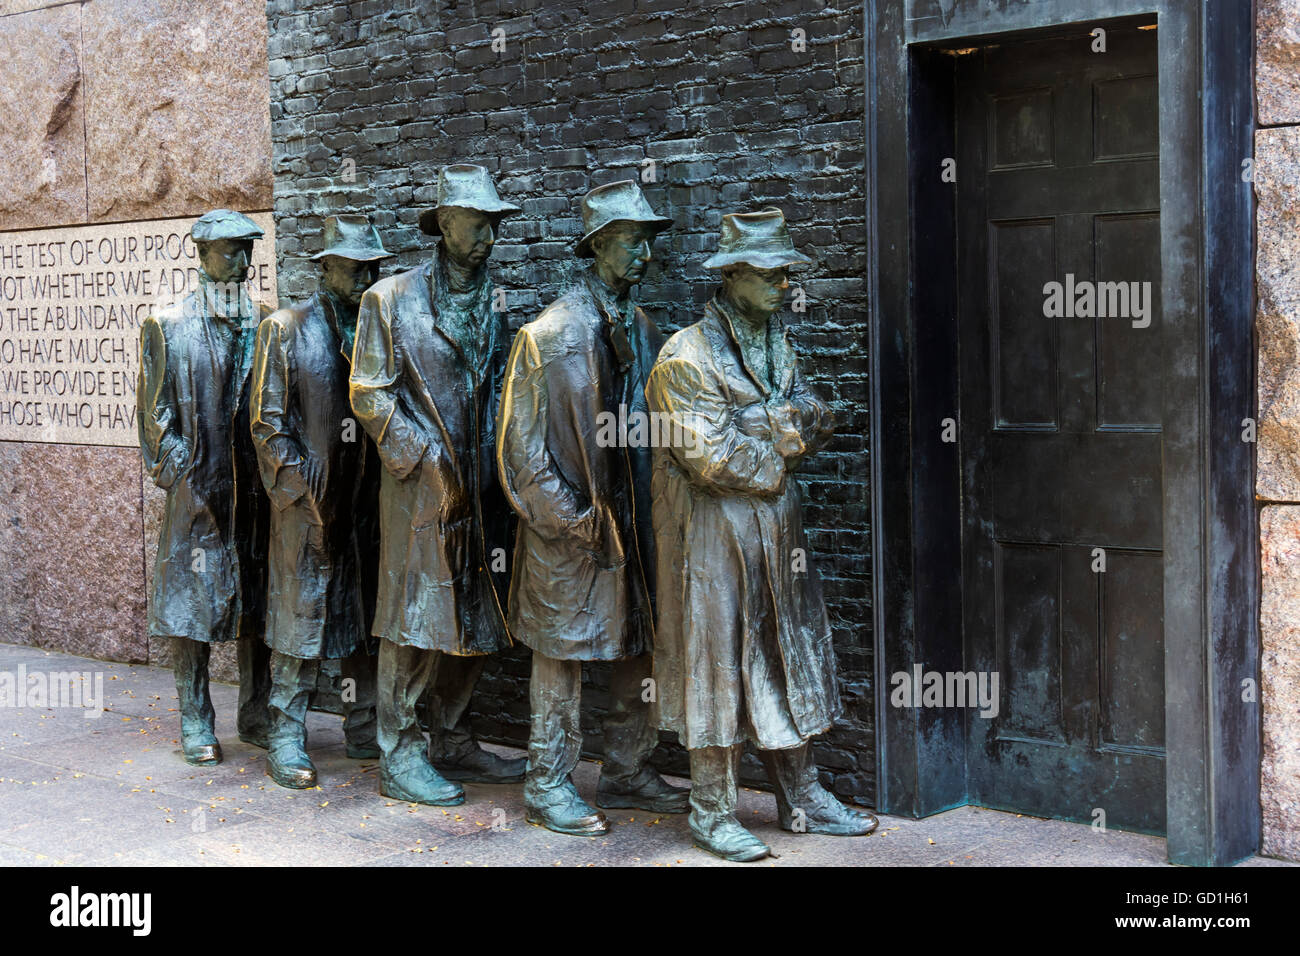 Bronze statue depicting people waiting on a bread line during the Great Depression, Franklin Delano Roosevelt Memorial - Stock Image